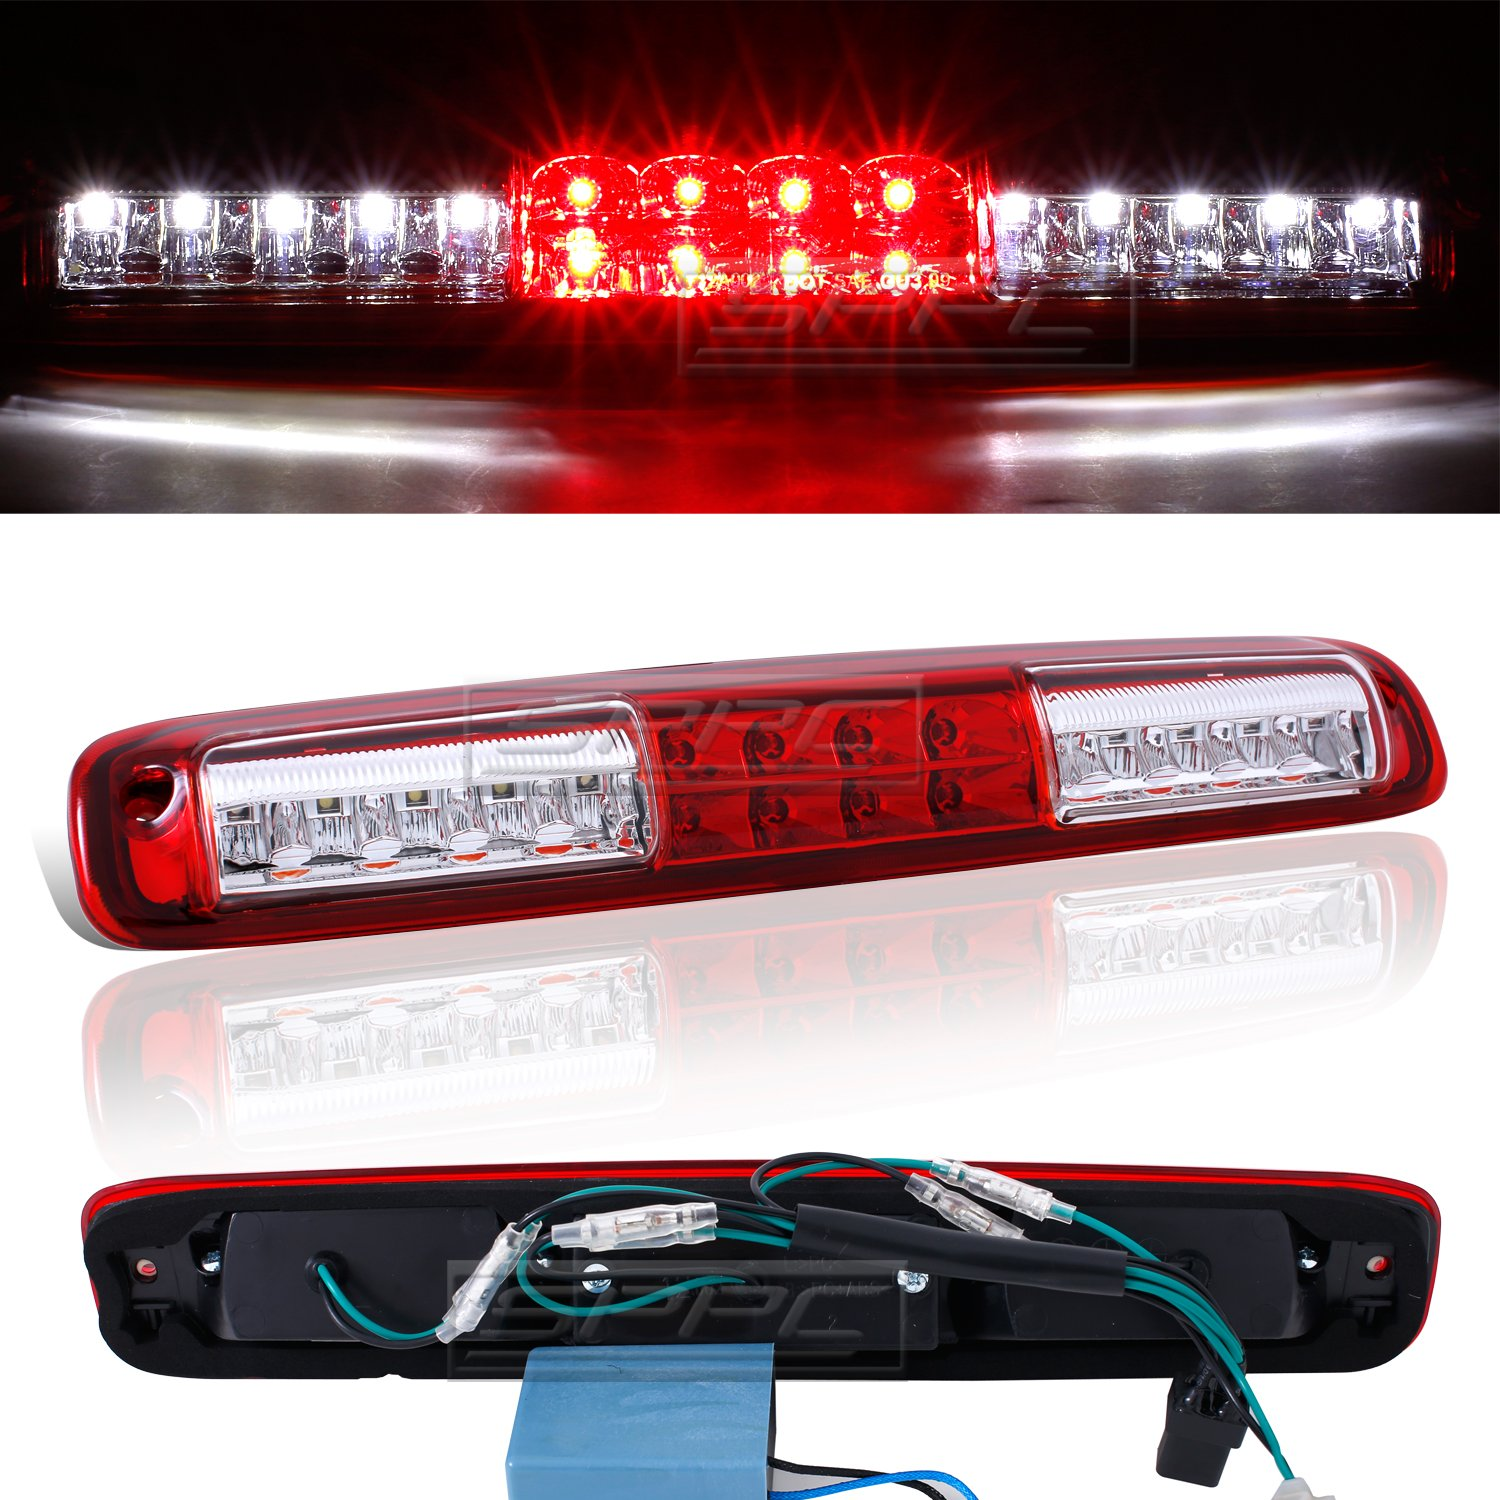 SPPC Red/Clear LED 3rd Brake Lights For Chevy Silverado : GMC Sierra - Cargp Tail Lamp